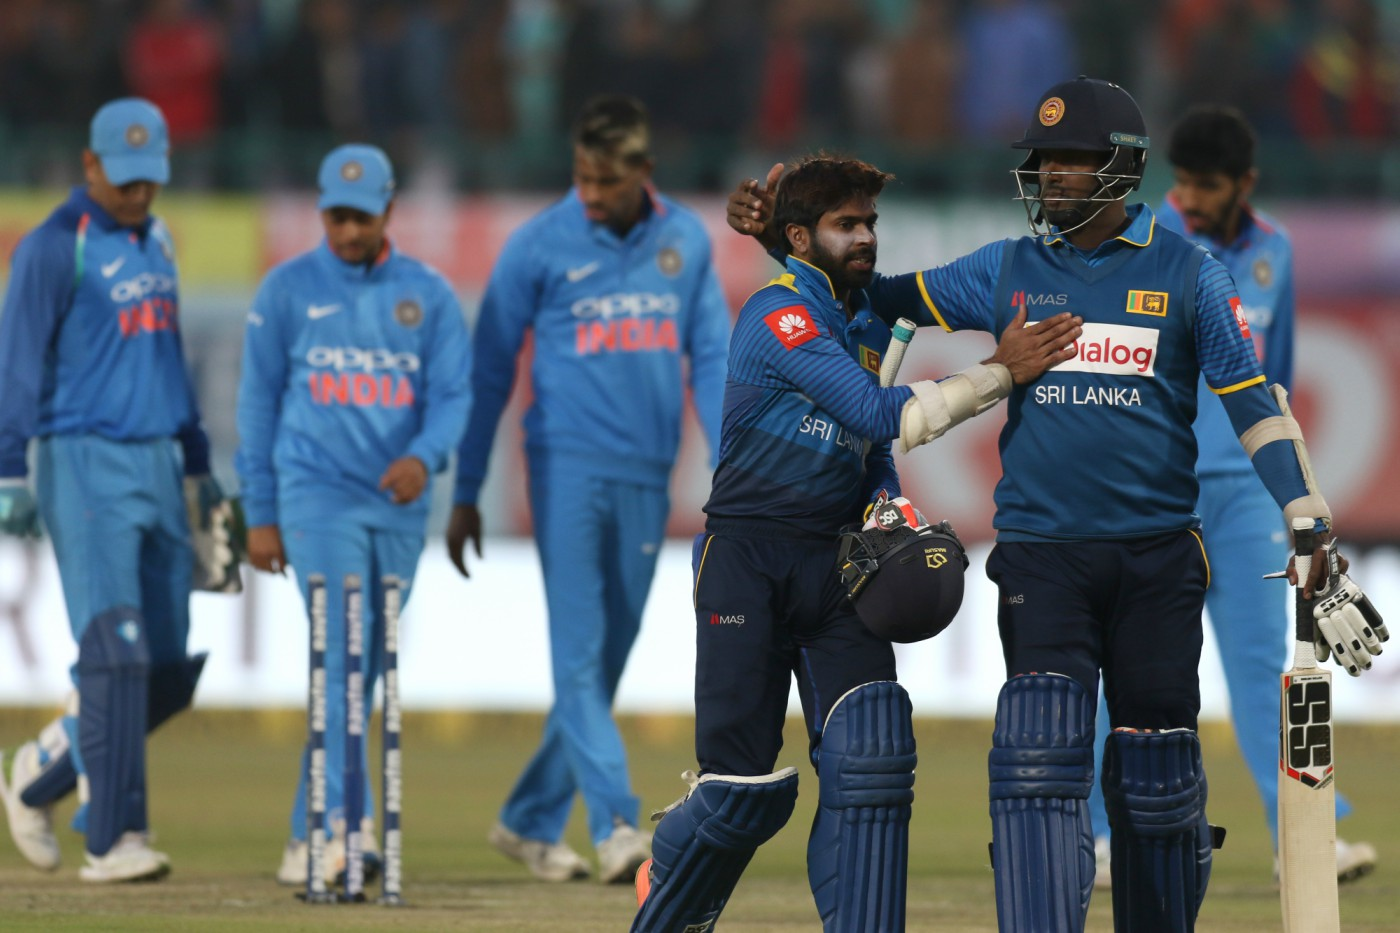 IND vs SL 2017: We Want To Do Something Special, Says Thisara Perera